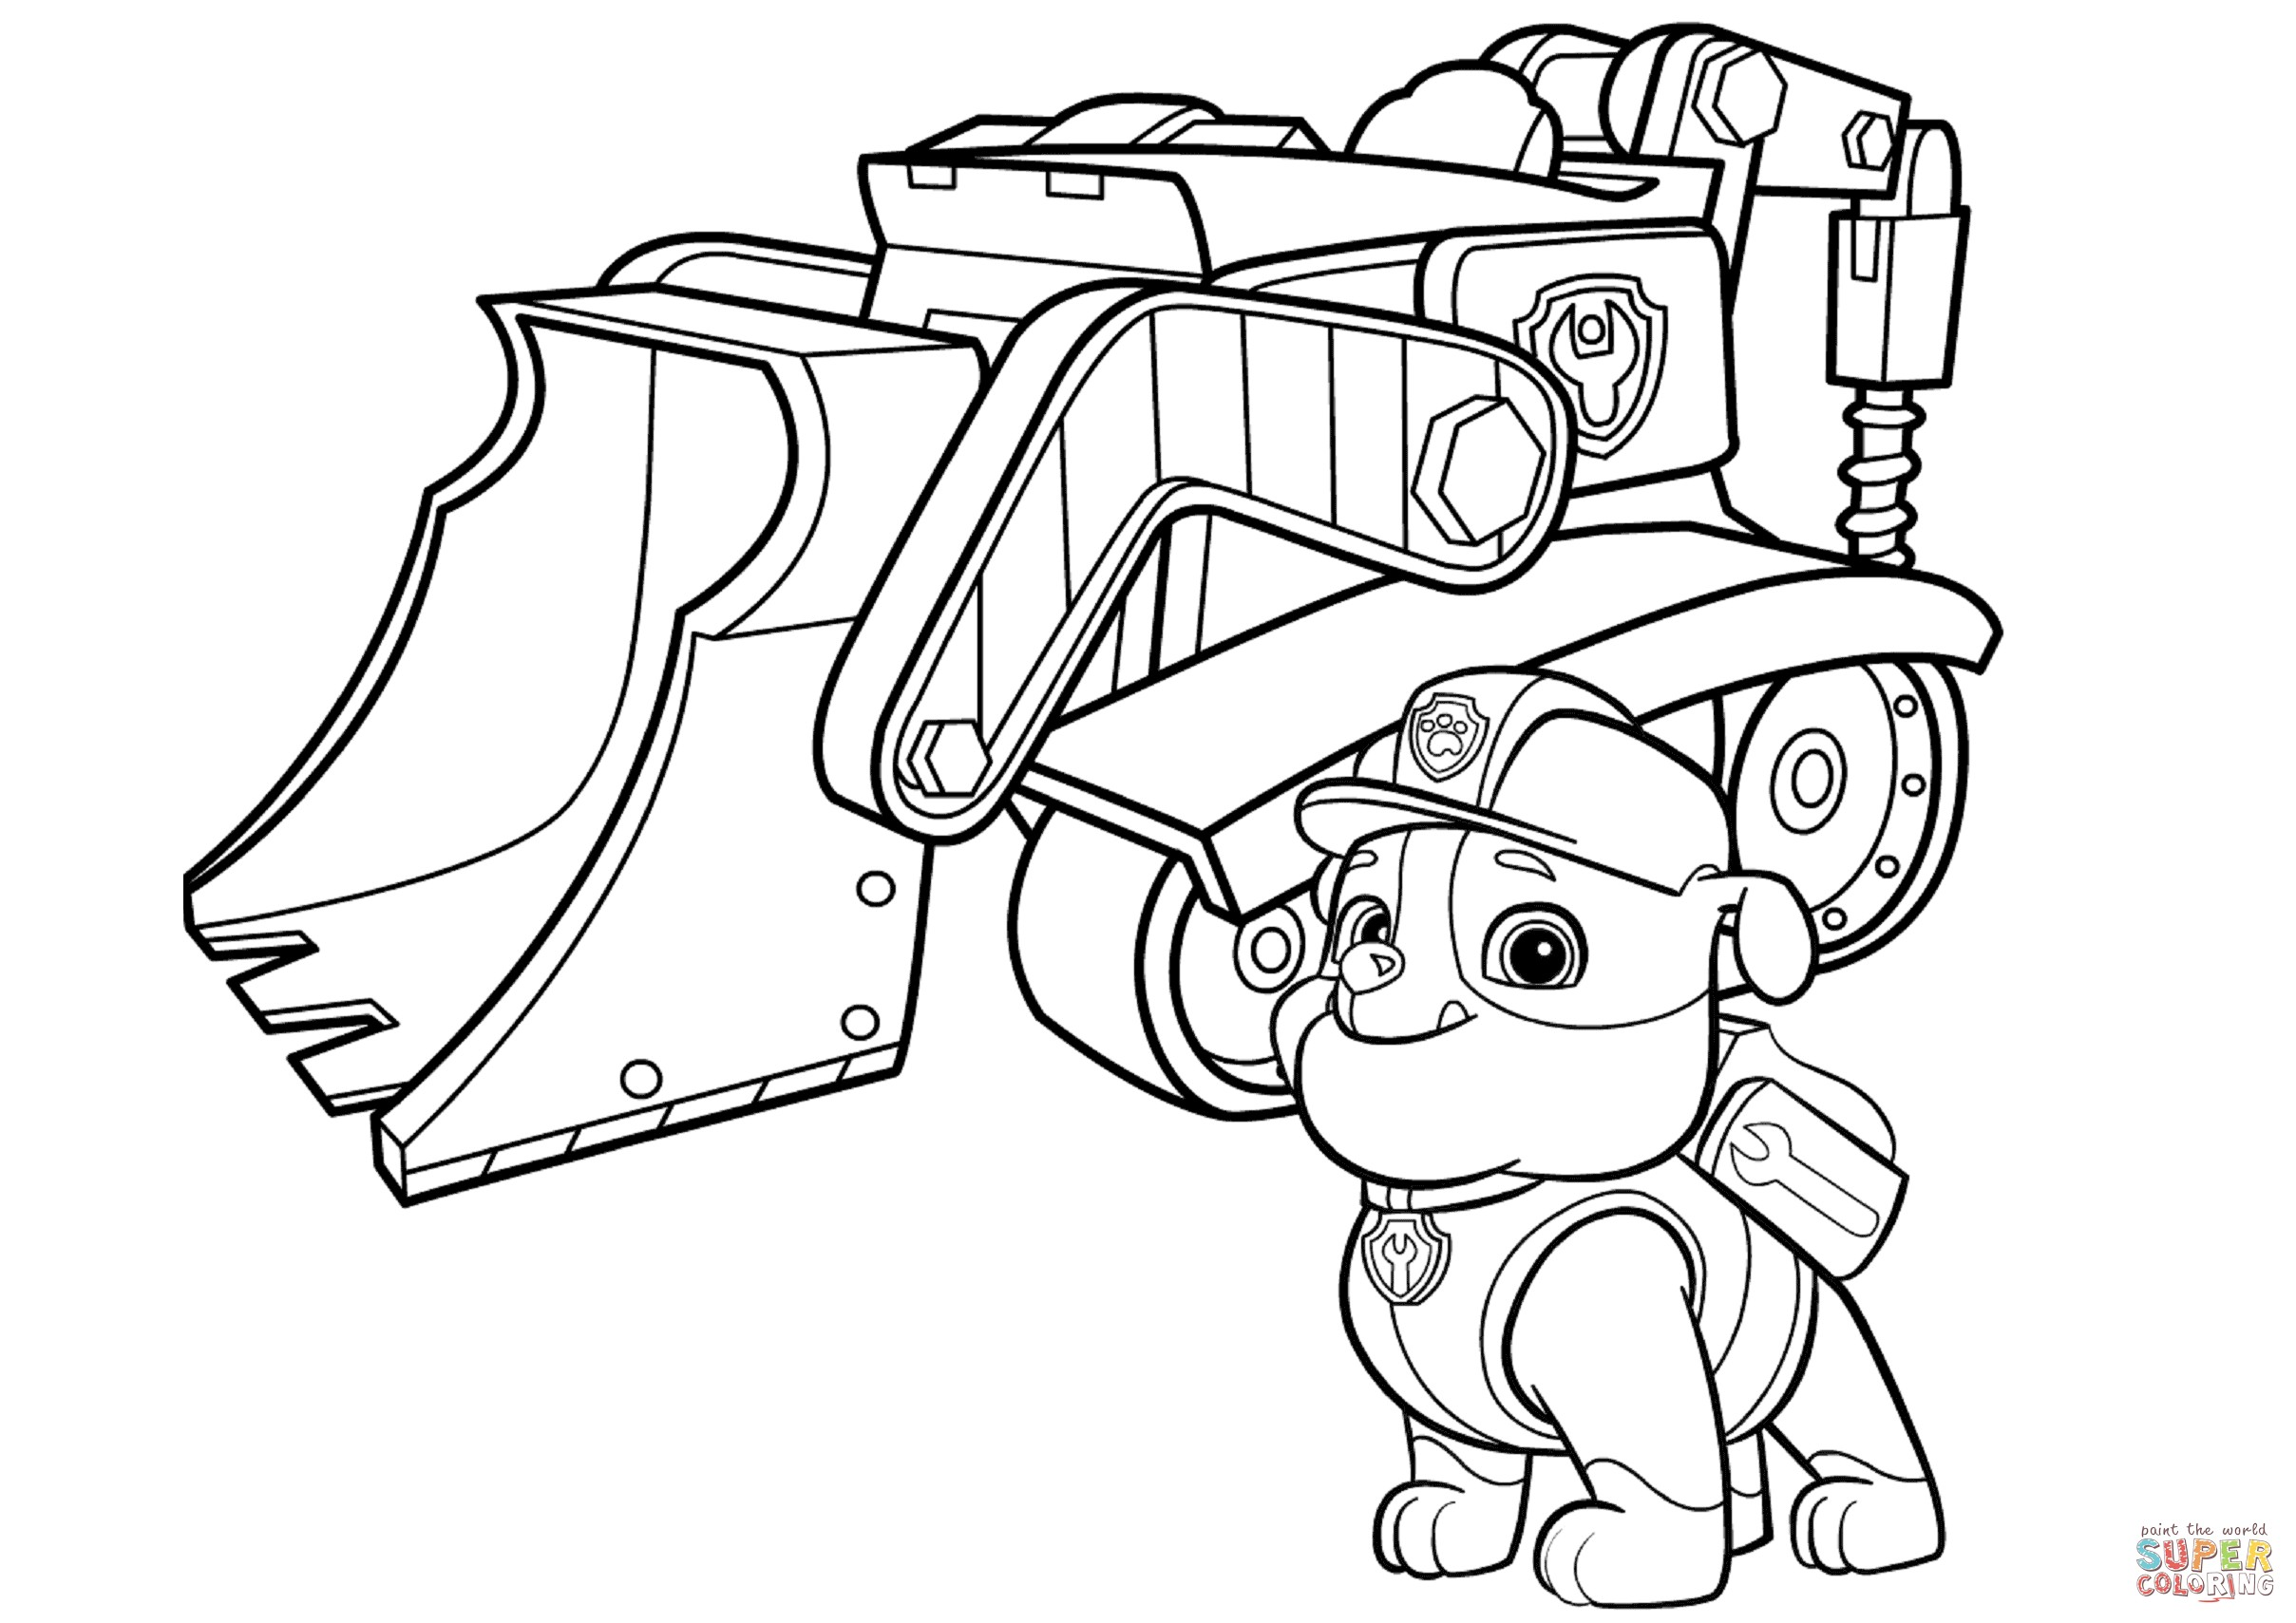 Kleurplaten Paw Patrol Rocky.The Best Free Rubble Drawing Images Download From 43 Free Drawings